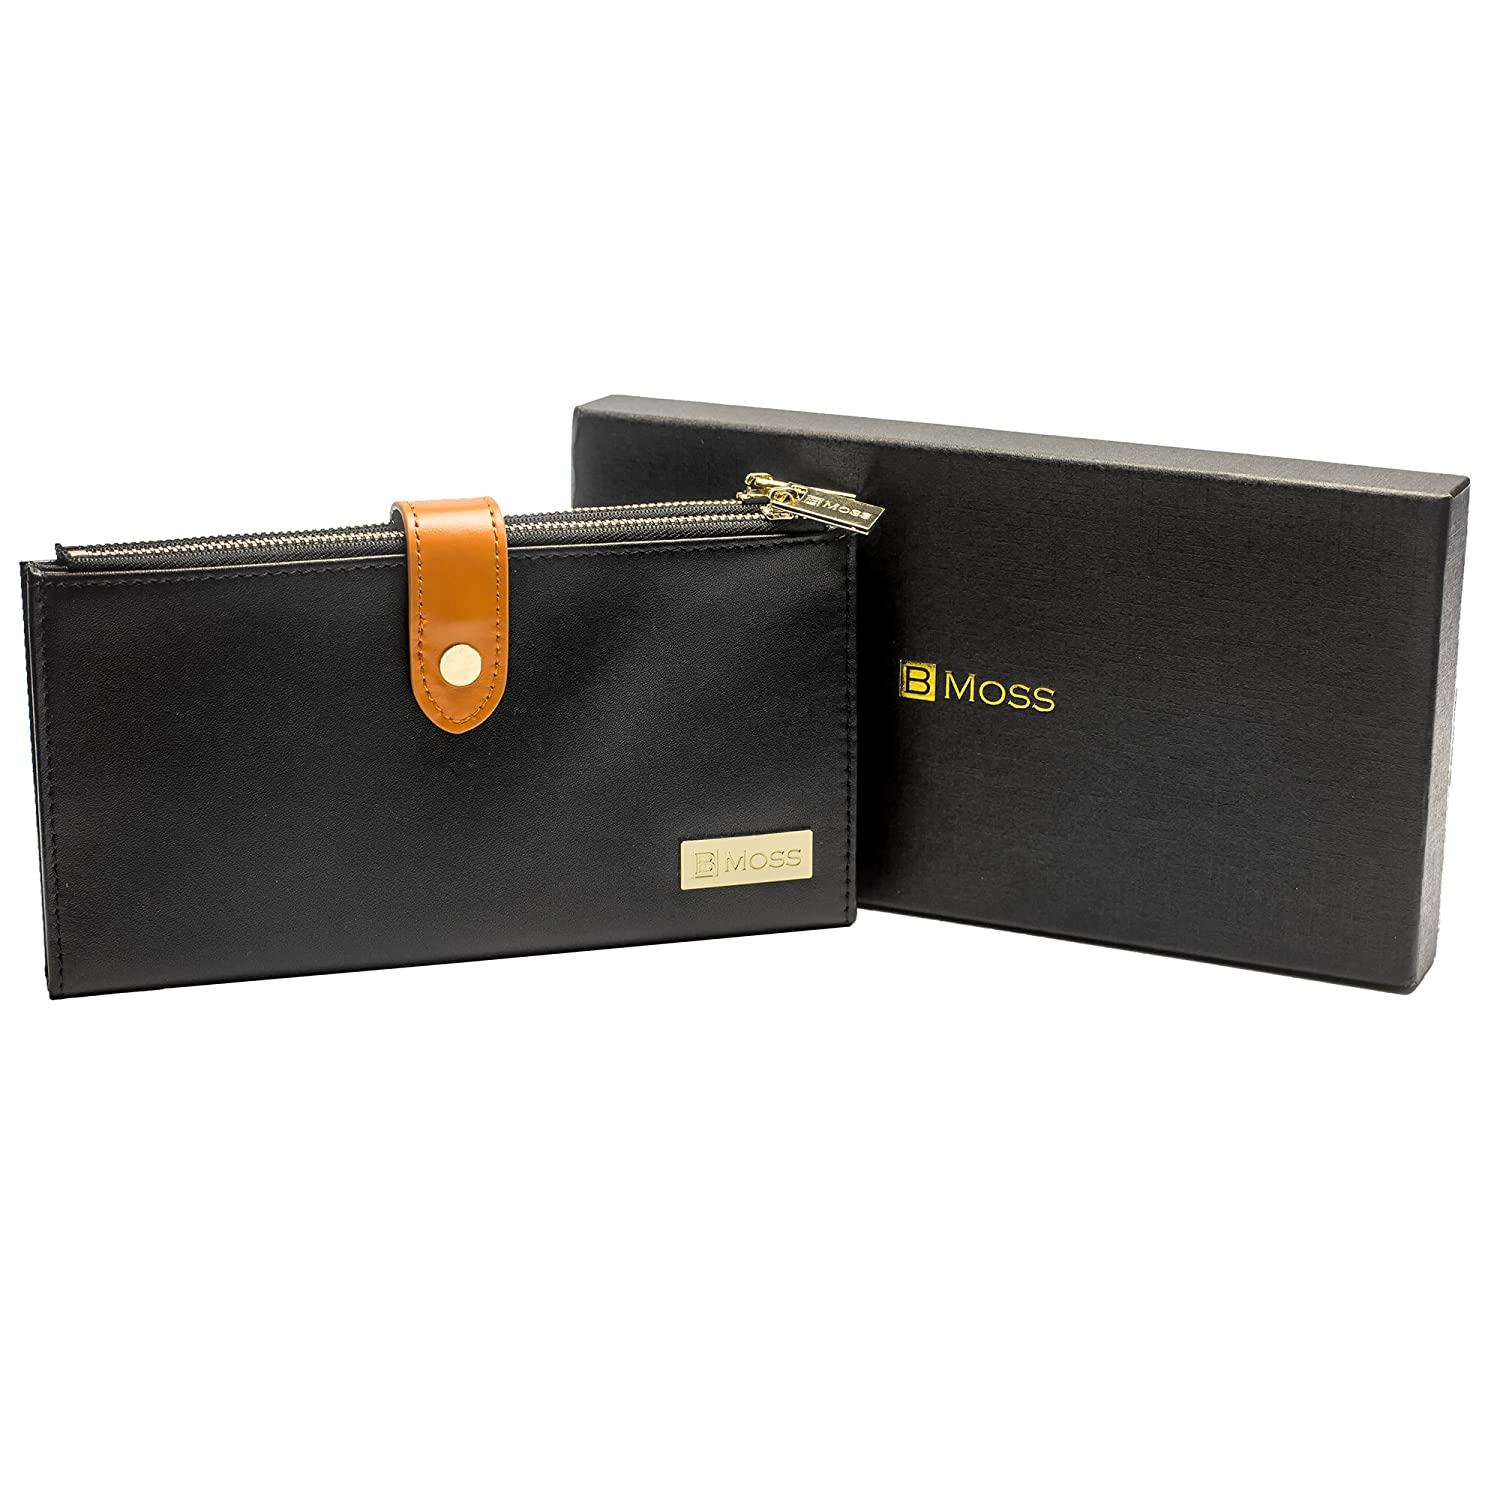 BMoss Leather Collection Luxur...